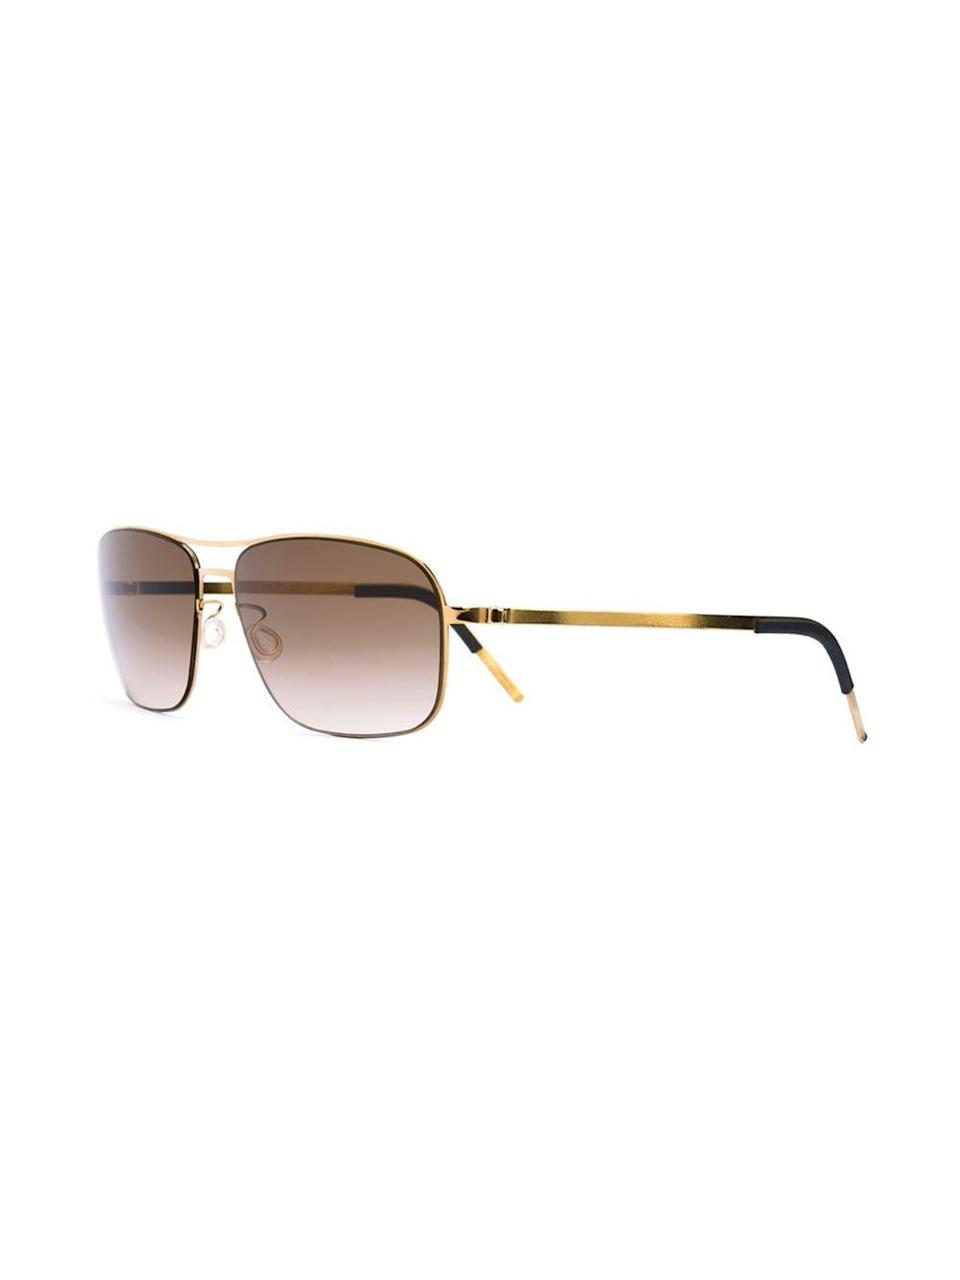 "<p>These cool frames will keep his eyes protected and his style in tact. <i>($655 <a href=""http://www.farfetch.com/ca/shopping/women/lindberg-rectangular-frame-sunglasses-item-11290244.aspx?storeid=9972&from=1&ffref=lp_pic_26_1_lst"" rel=""nofollow noopener"" target=""_blank"" data-ylk=""slk:via Farfetch"" class=""link rapid-noclick-resp"">via Farfetch</a>)</i></p>"